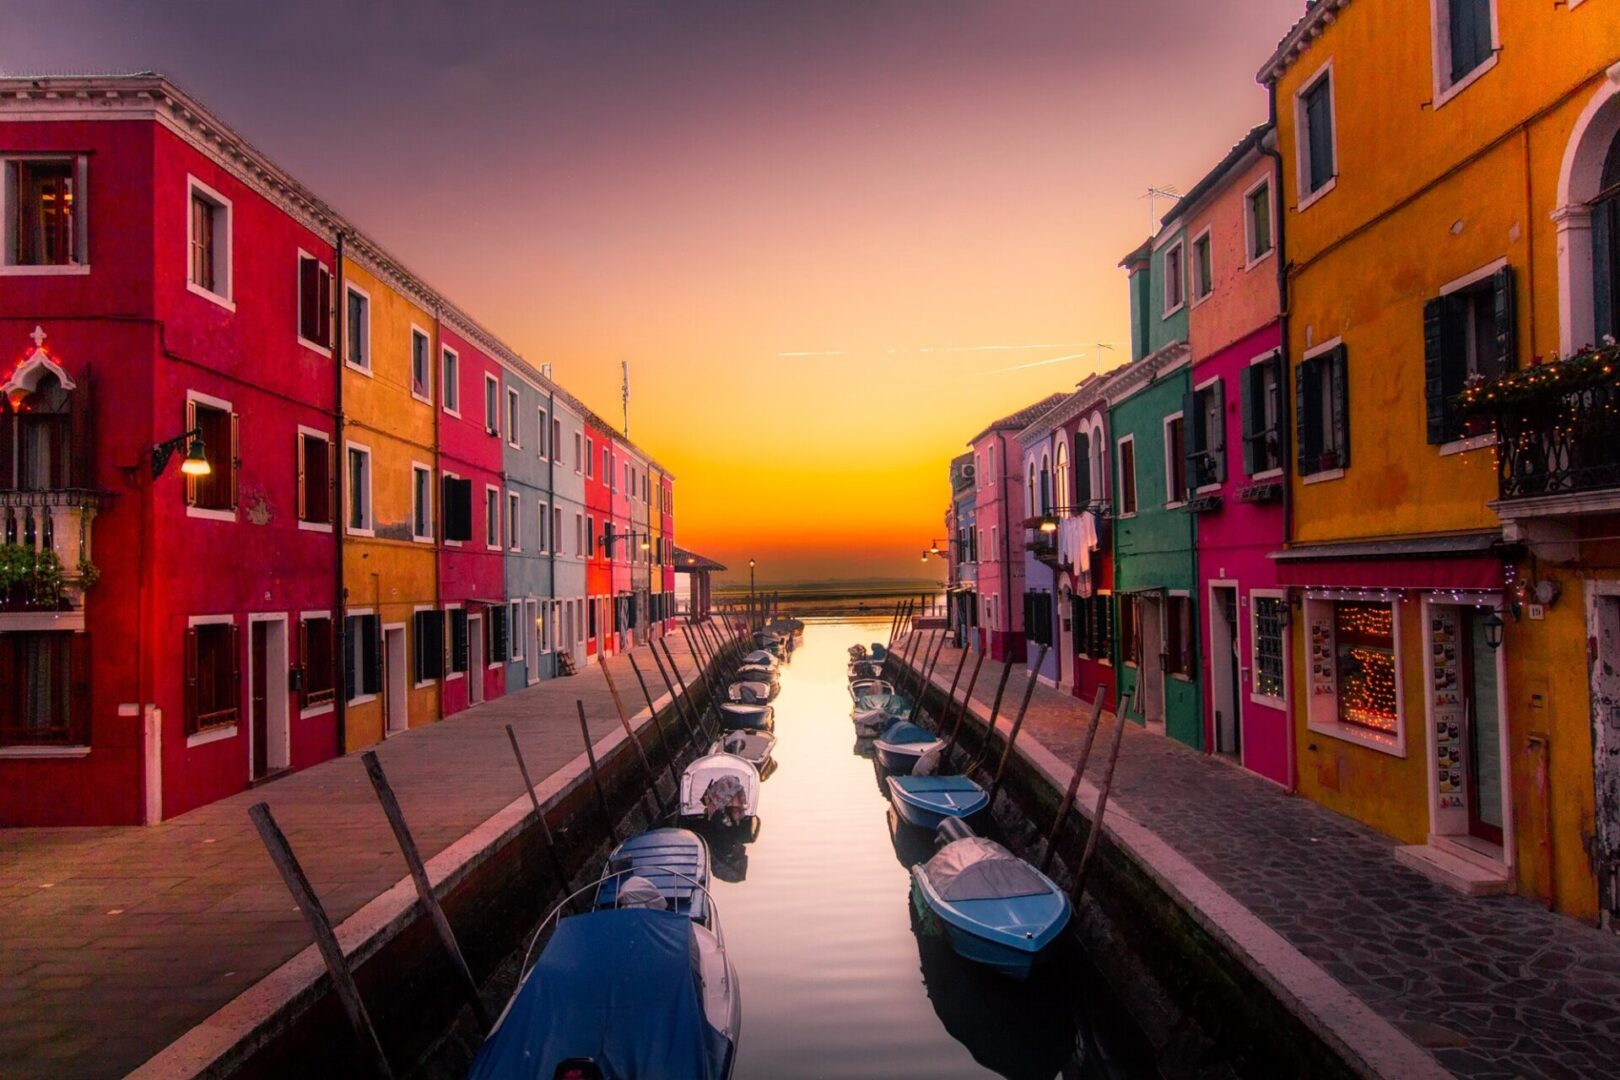 architecture-boats-buildings-canal-417344